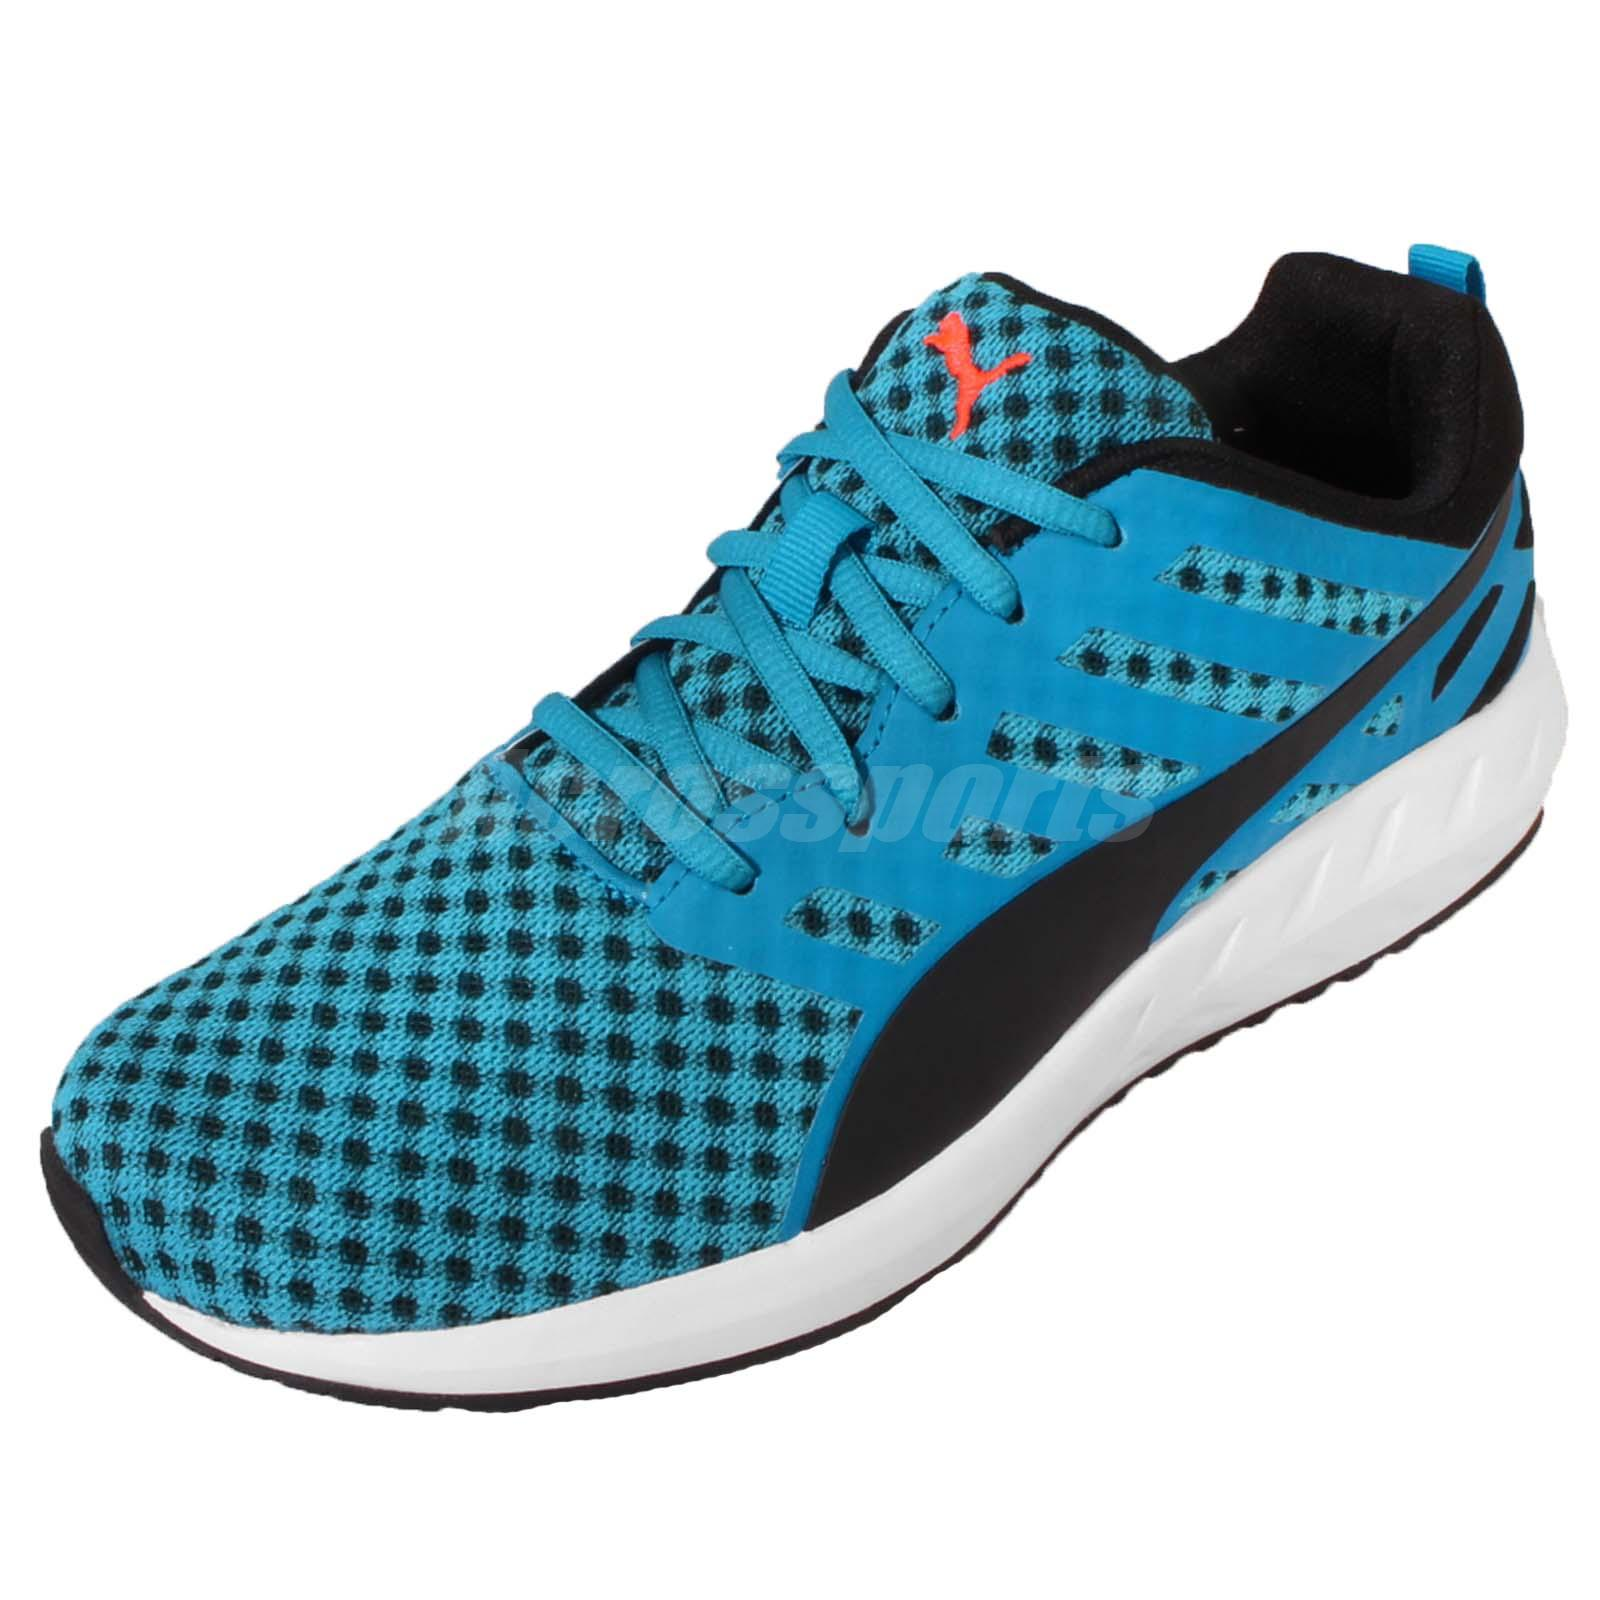 b49a3a7adcc Details about Puma Flare Blue Black White Men Running Casual Shoes Sneakers  Runner 188625-01